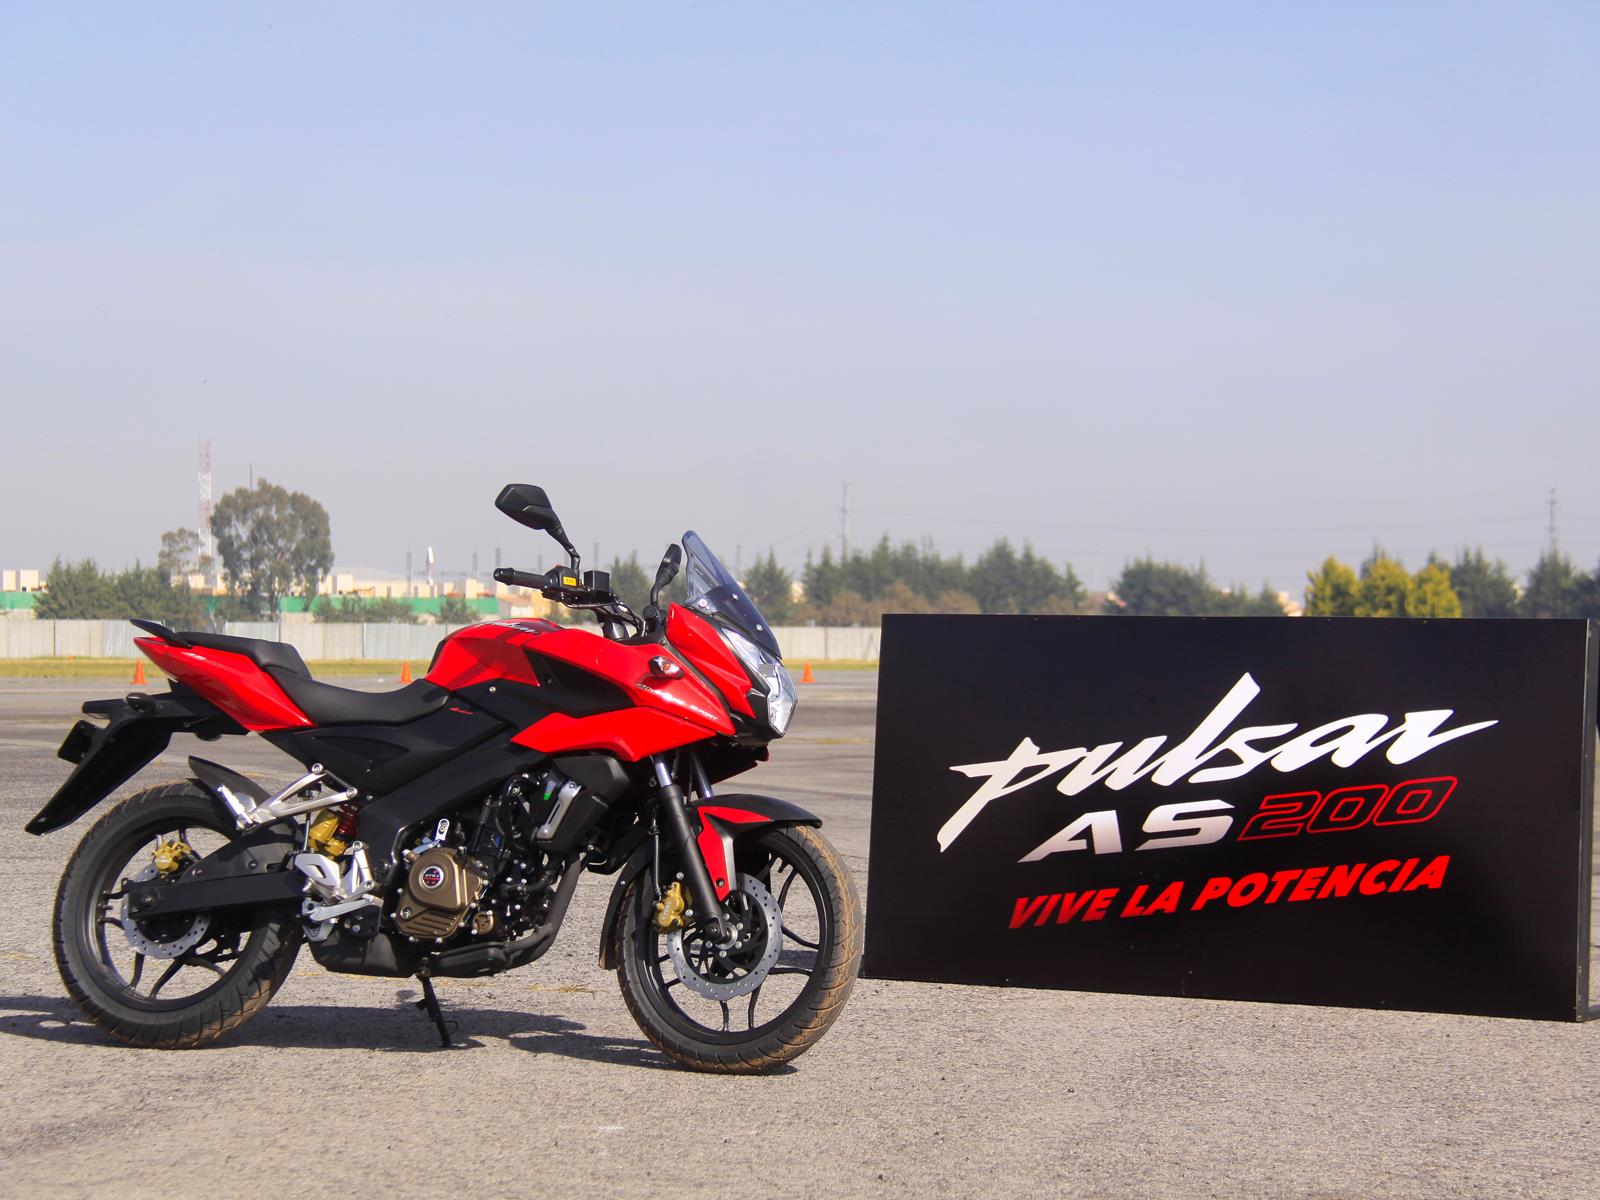 Bajaj Pulsar Rs 200 Y As 200 2016 Autocosmos Com